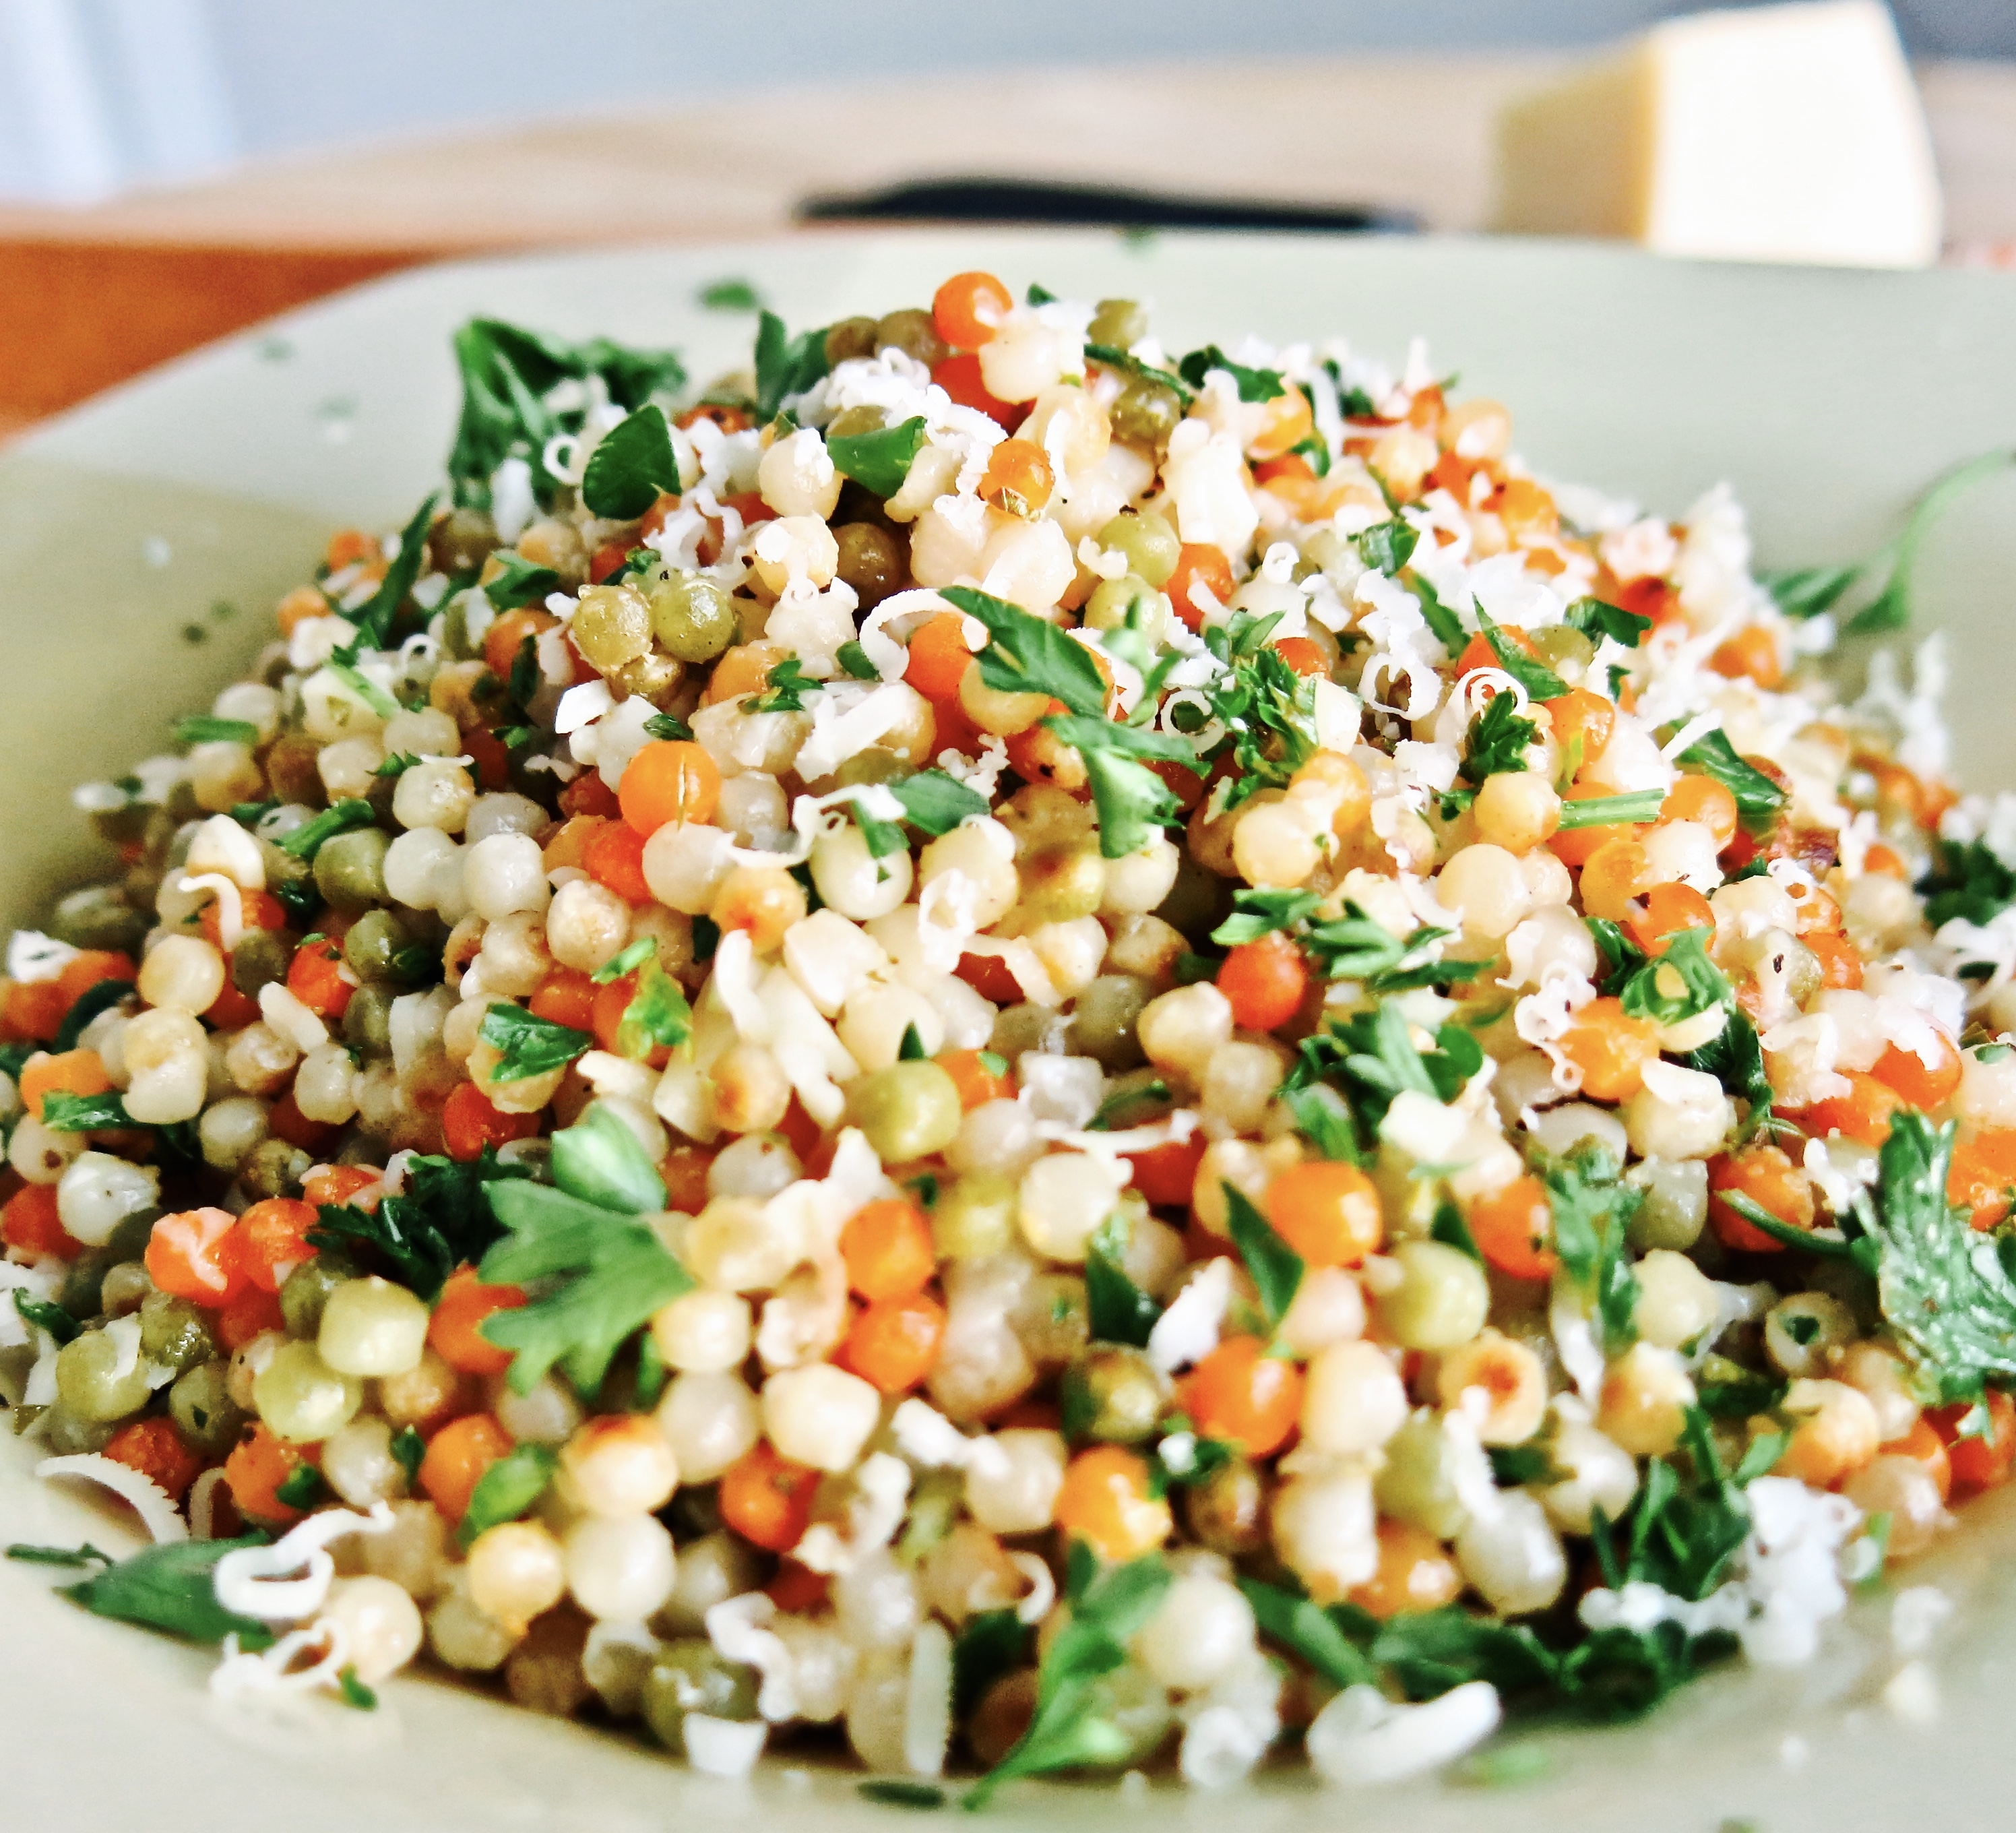 Lemony Couscous with Garlic and Parsley